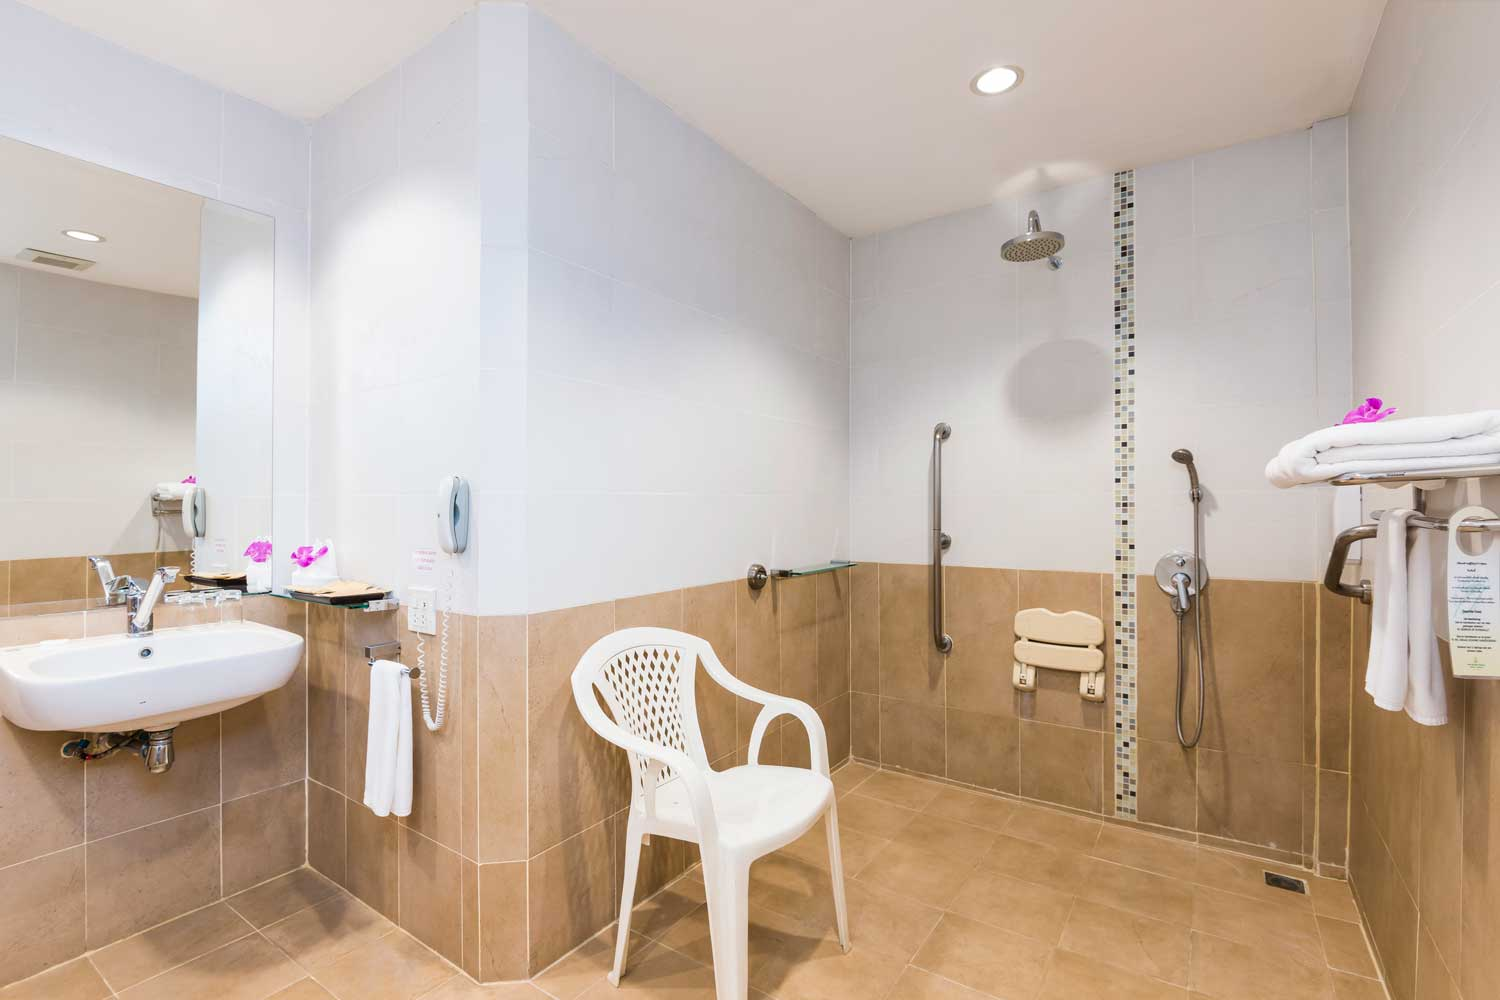 The bathroom of a disabled deluxe apartment hotel room of the Thai Garden Resort in Pattaya, Thailand